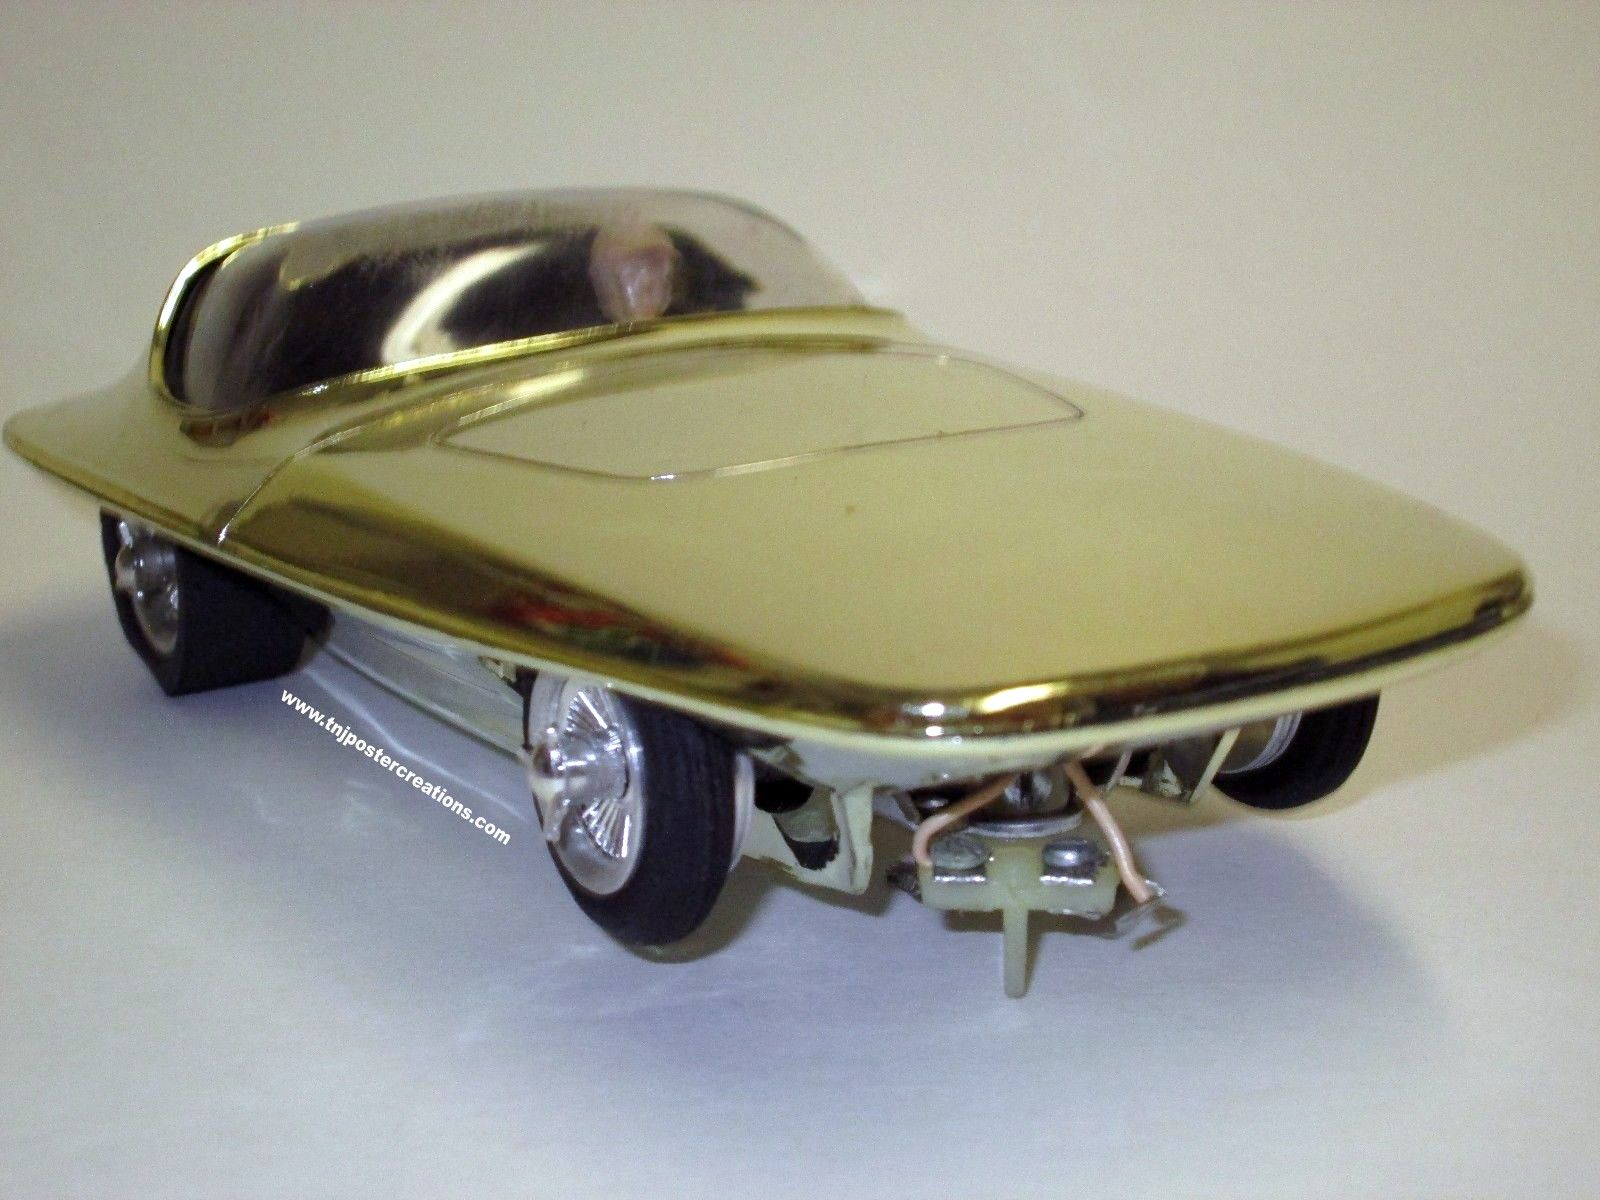 MPC Dyno SC-100 1/32 scale slot car in gold  | vintage model